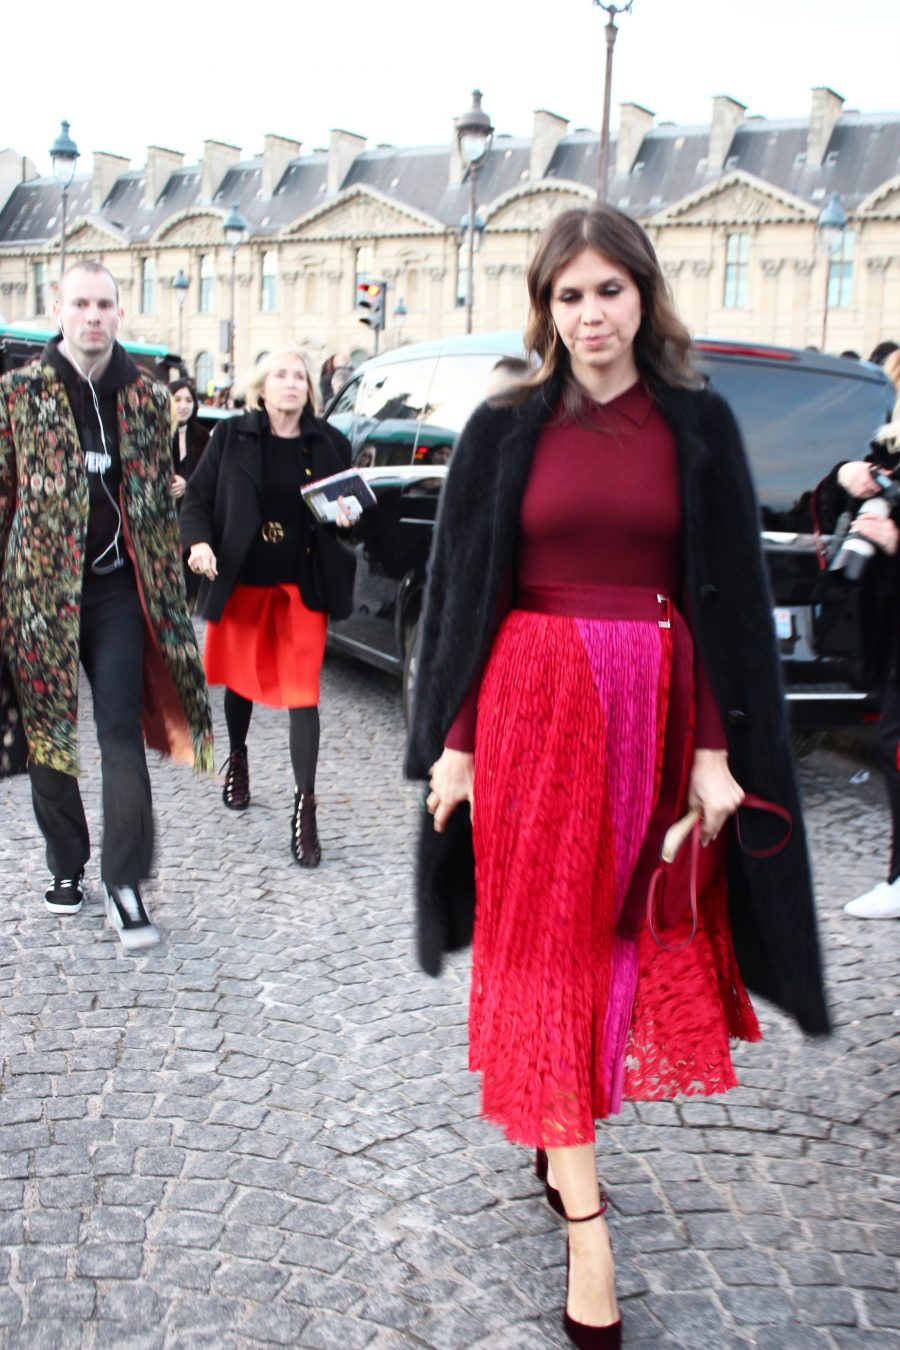 Paris Fashion Week Street Style Looks AH17 dasha zhukova